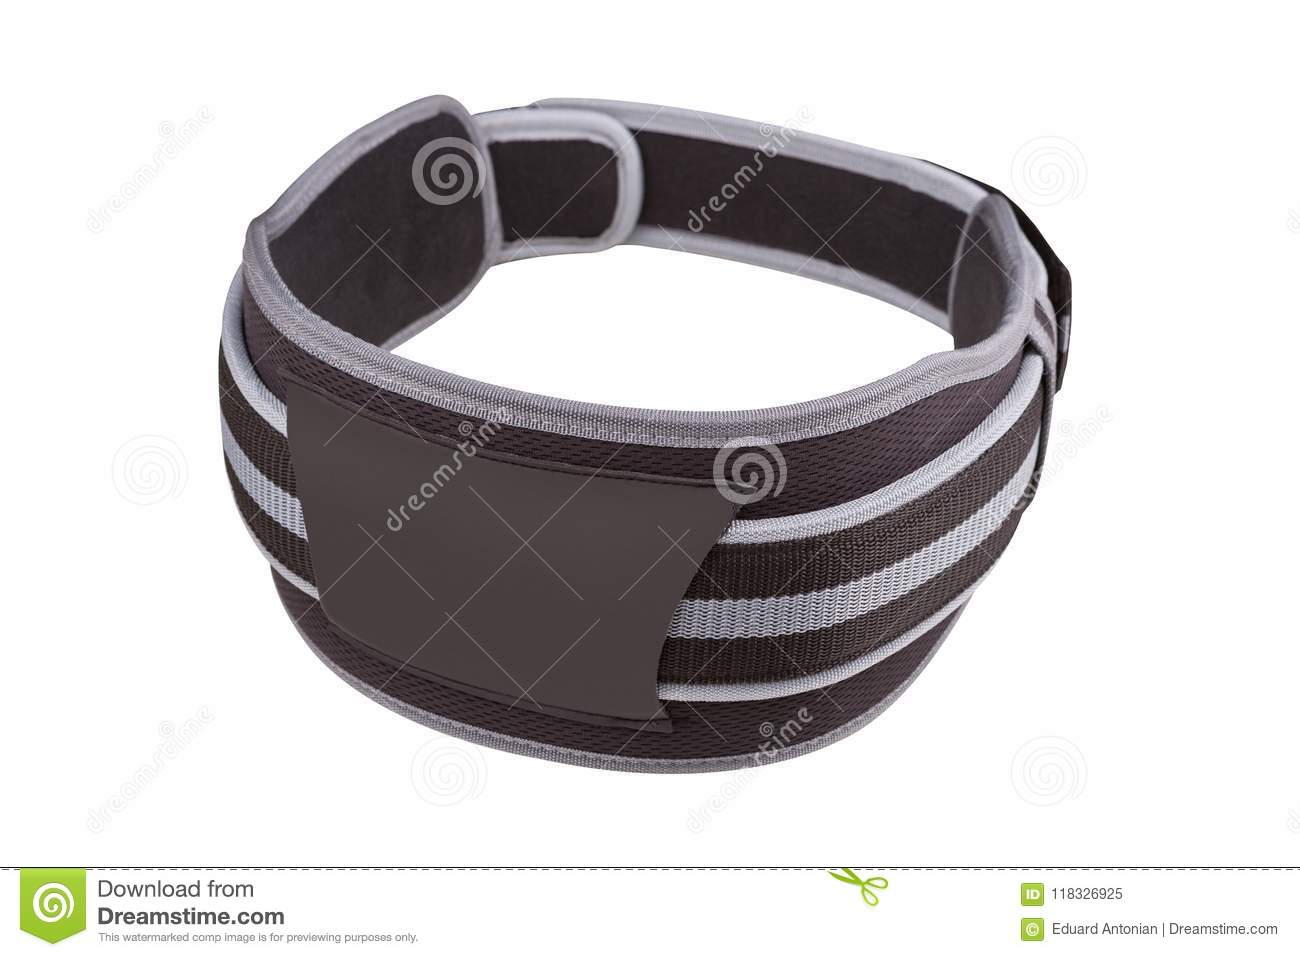 Gray wide belt for weight lifting and powerlifting, buttoned, on white background isolated